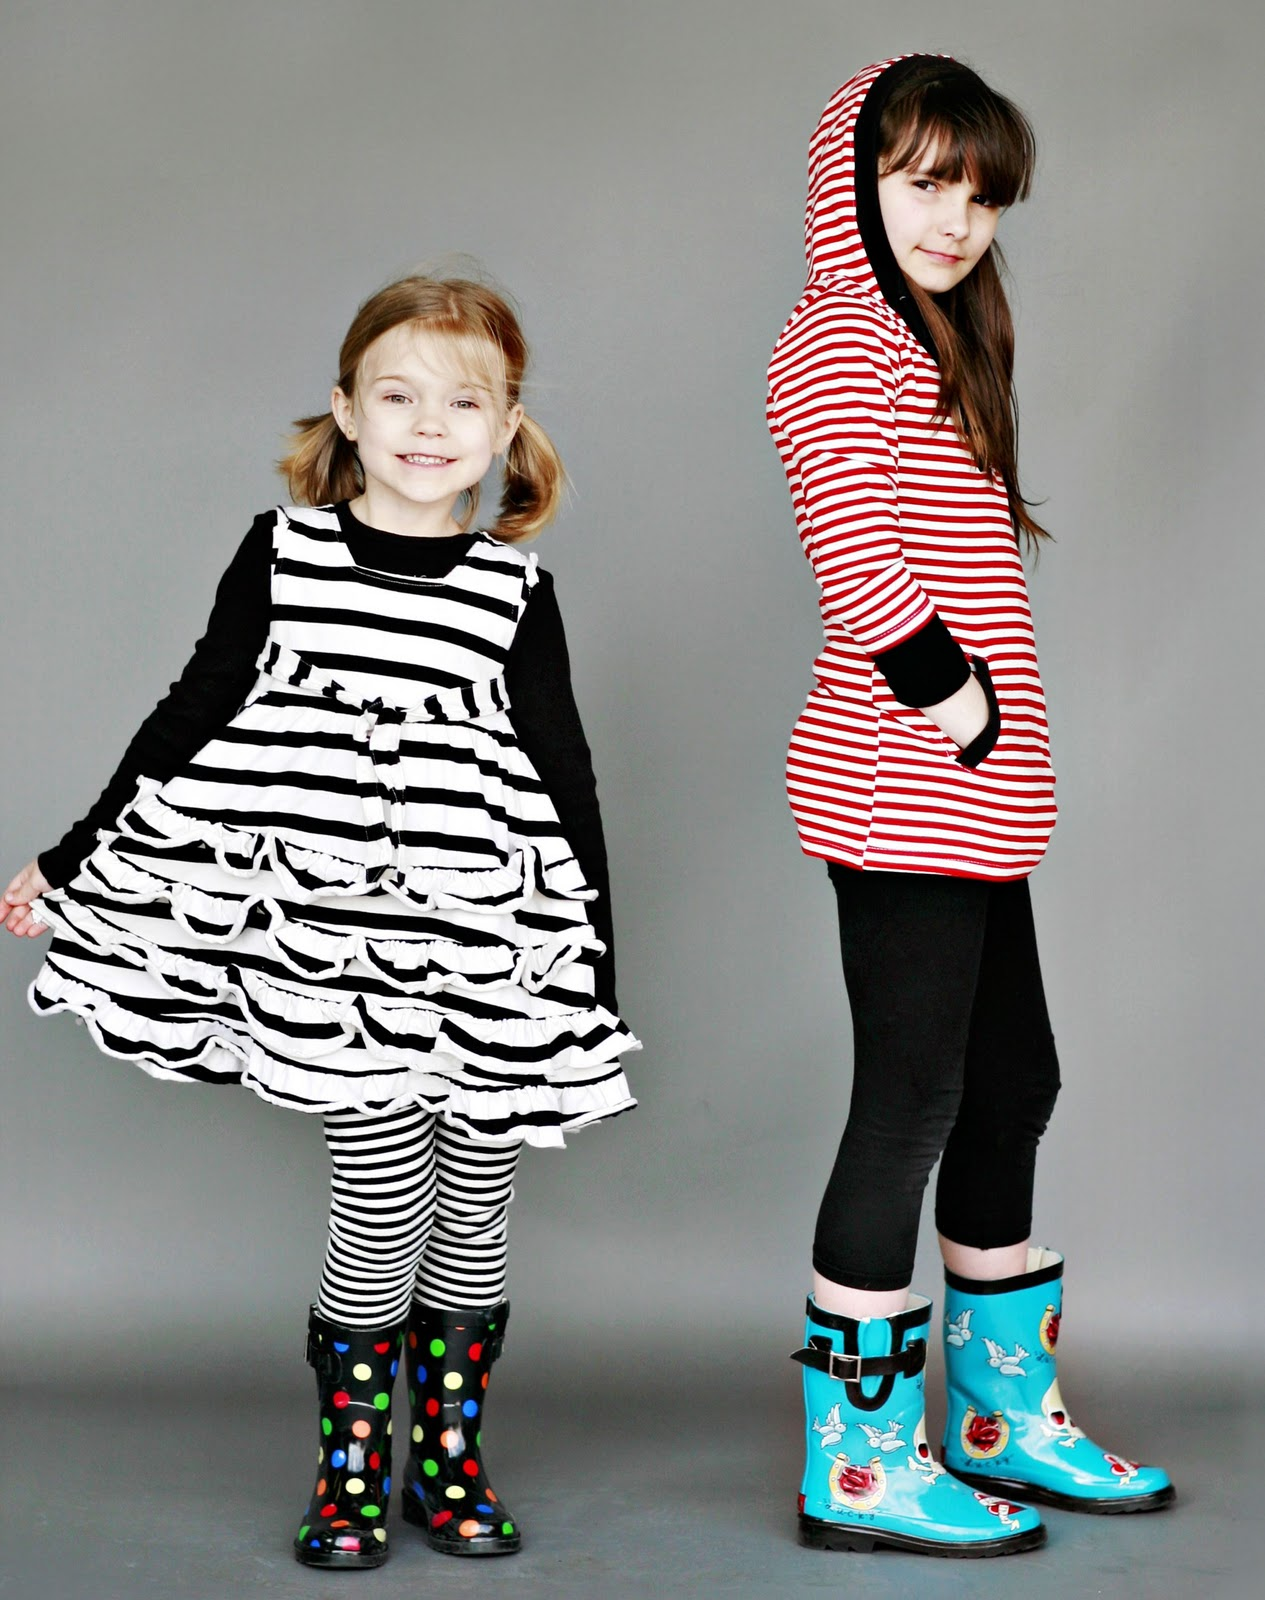 That 39 S The Coolest Thing Cool New Tween Fashion Blog